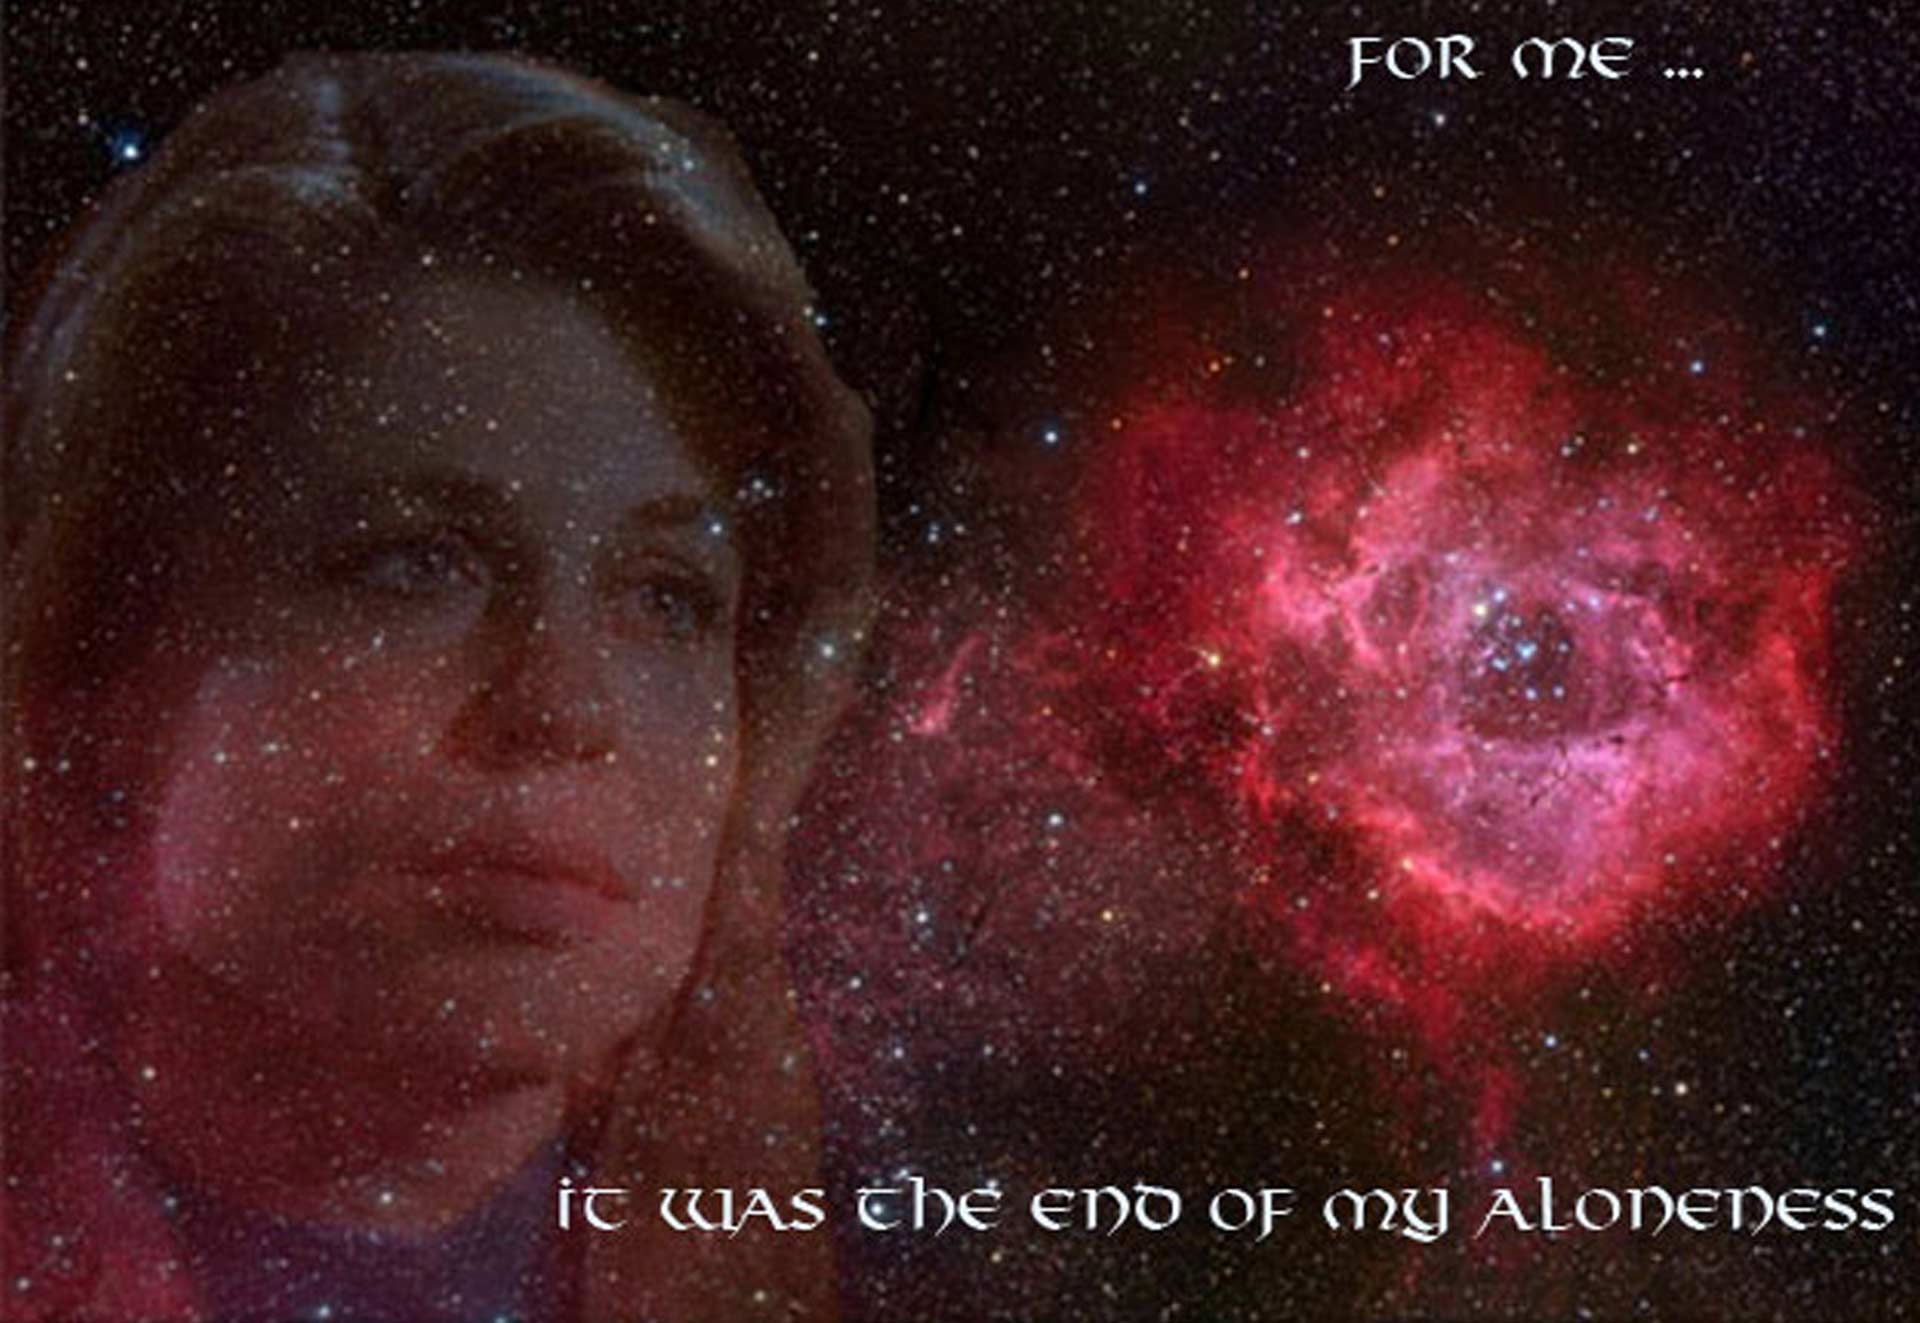 Catherine's image, the long stem rosette nebula in the background. Text reads: For me, it was the end of my aloneness